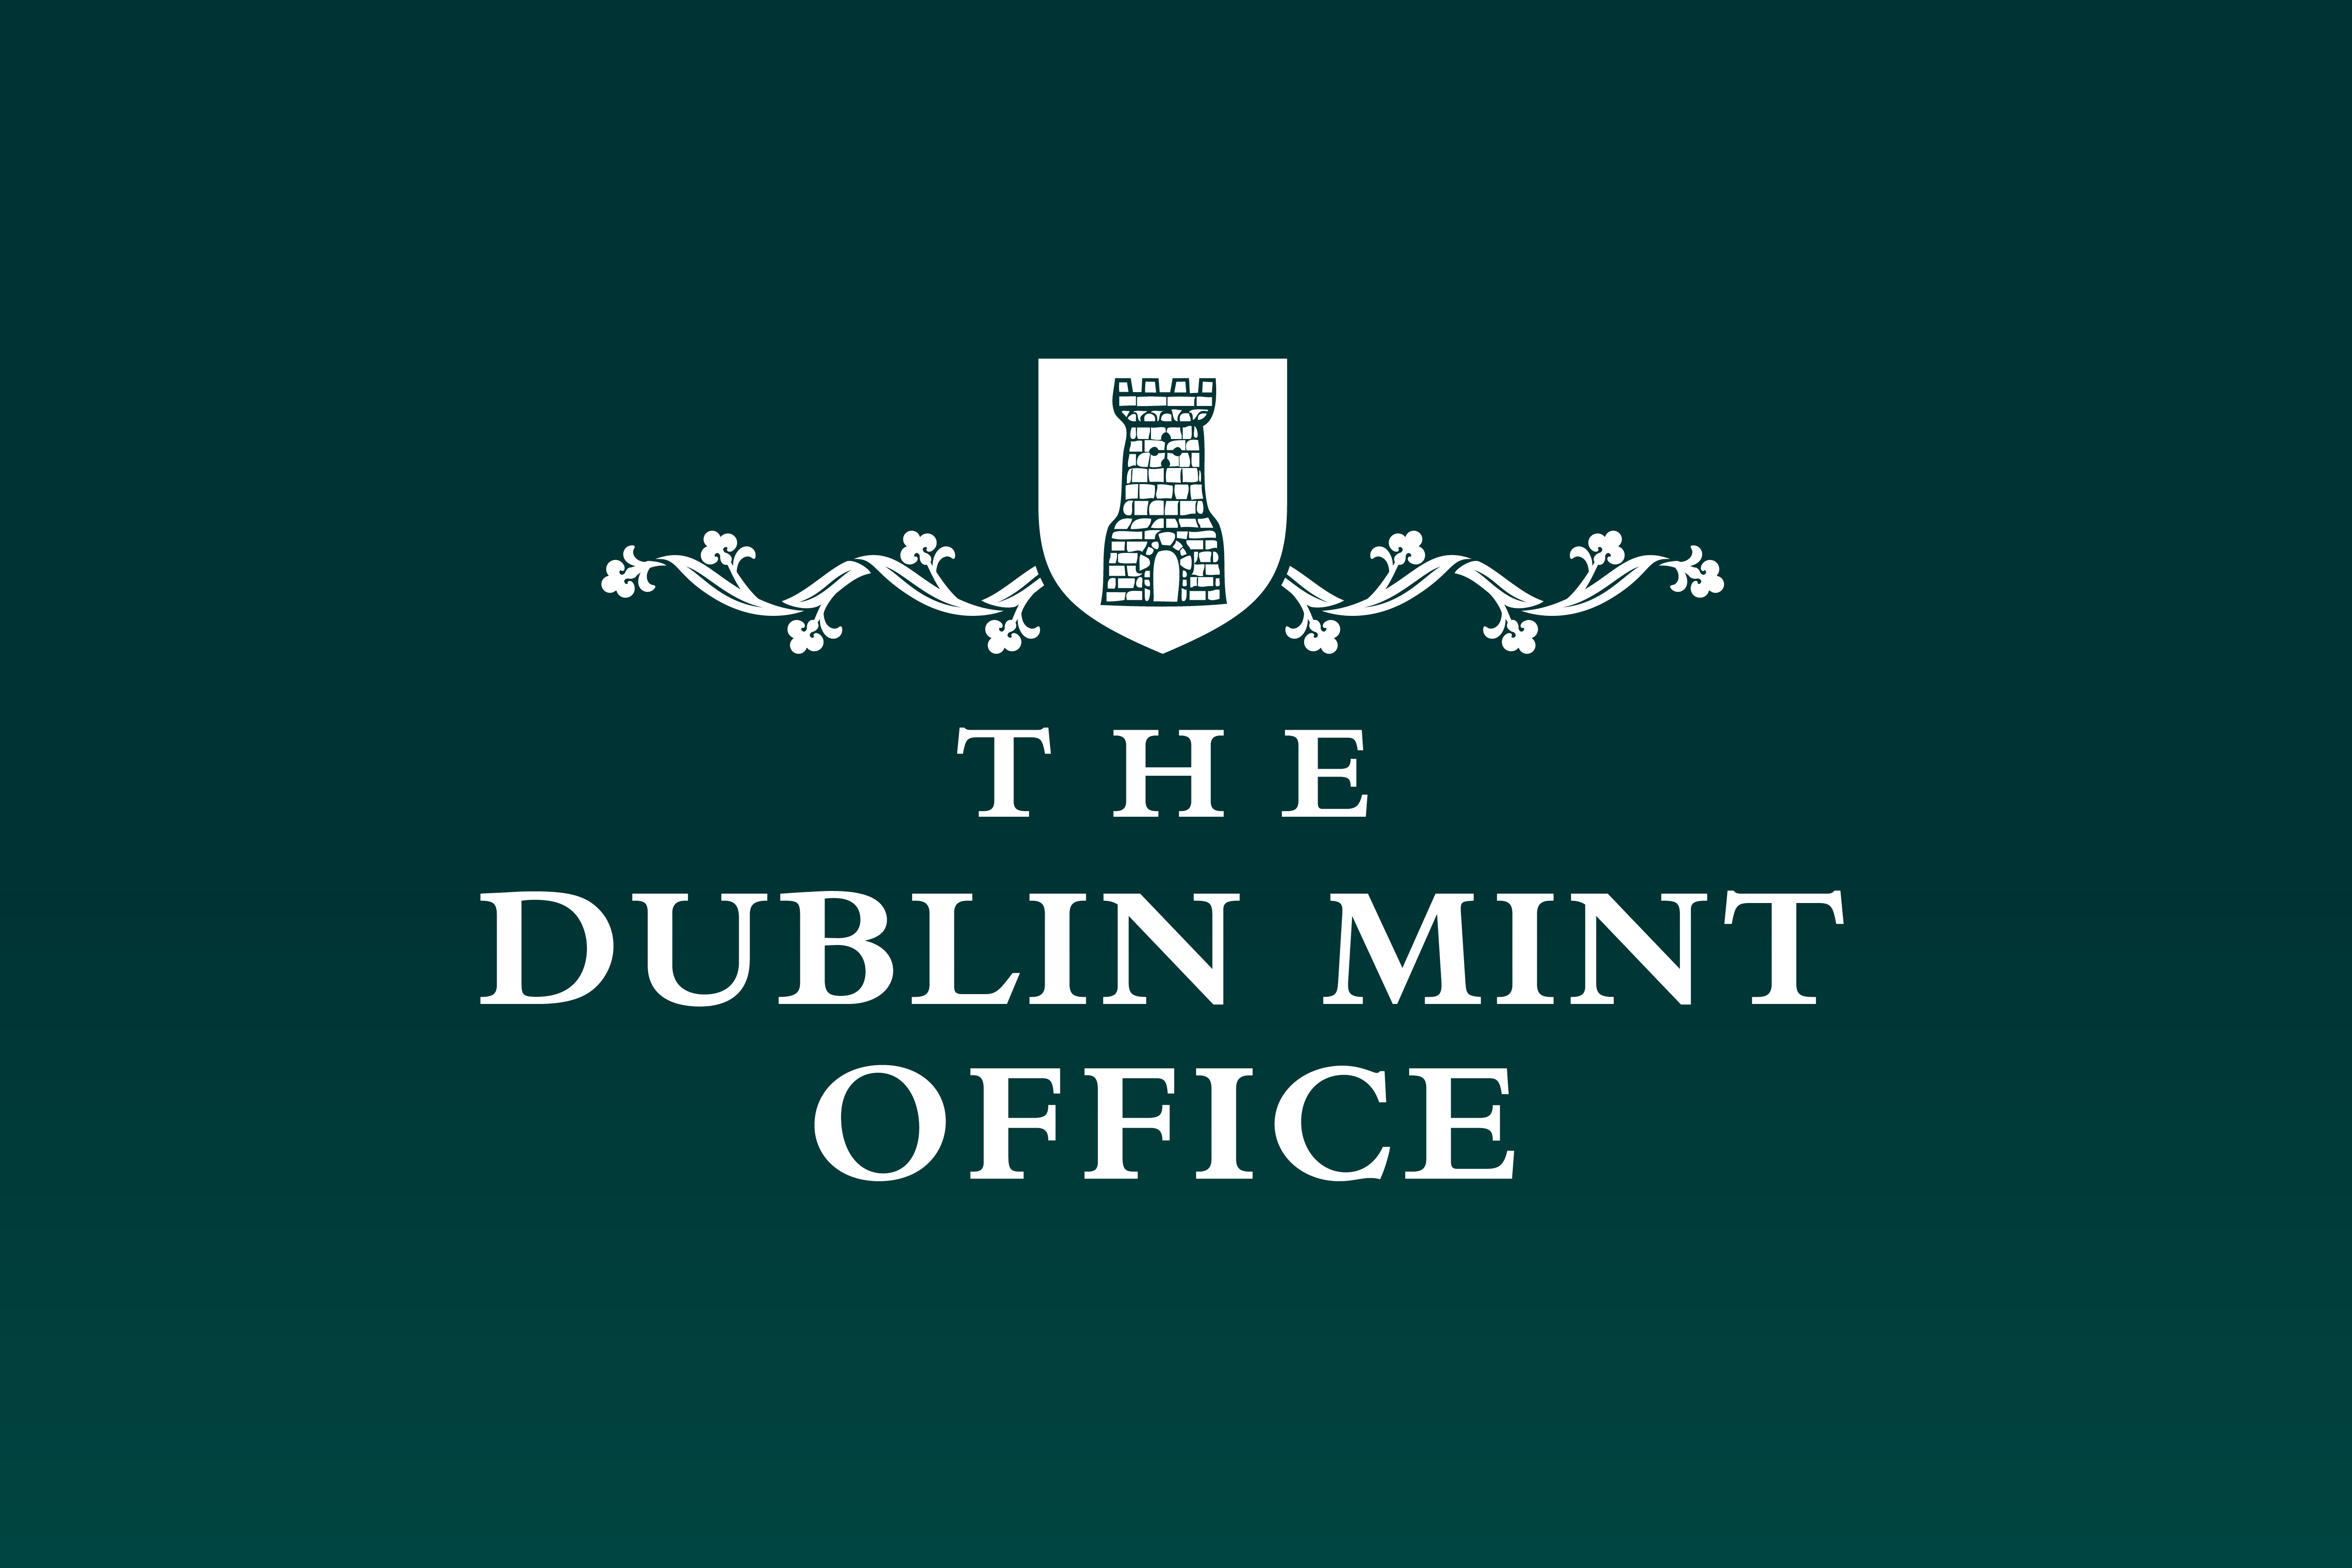 Dublin Mint Office